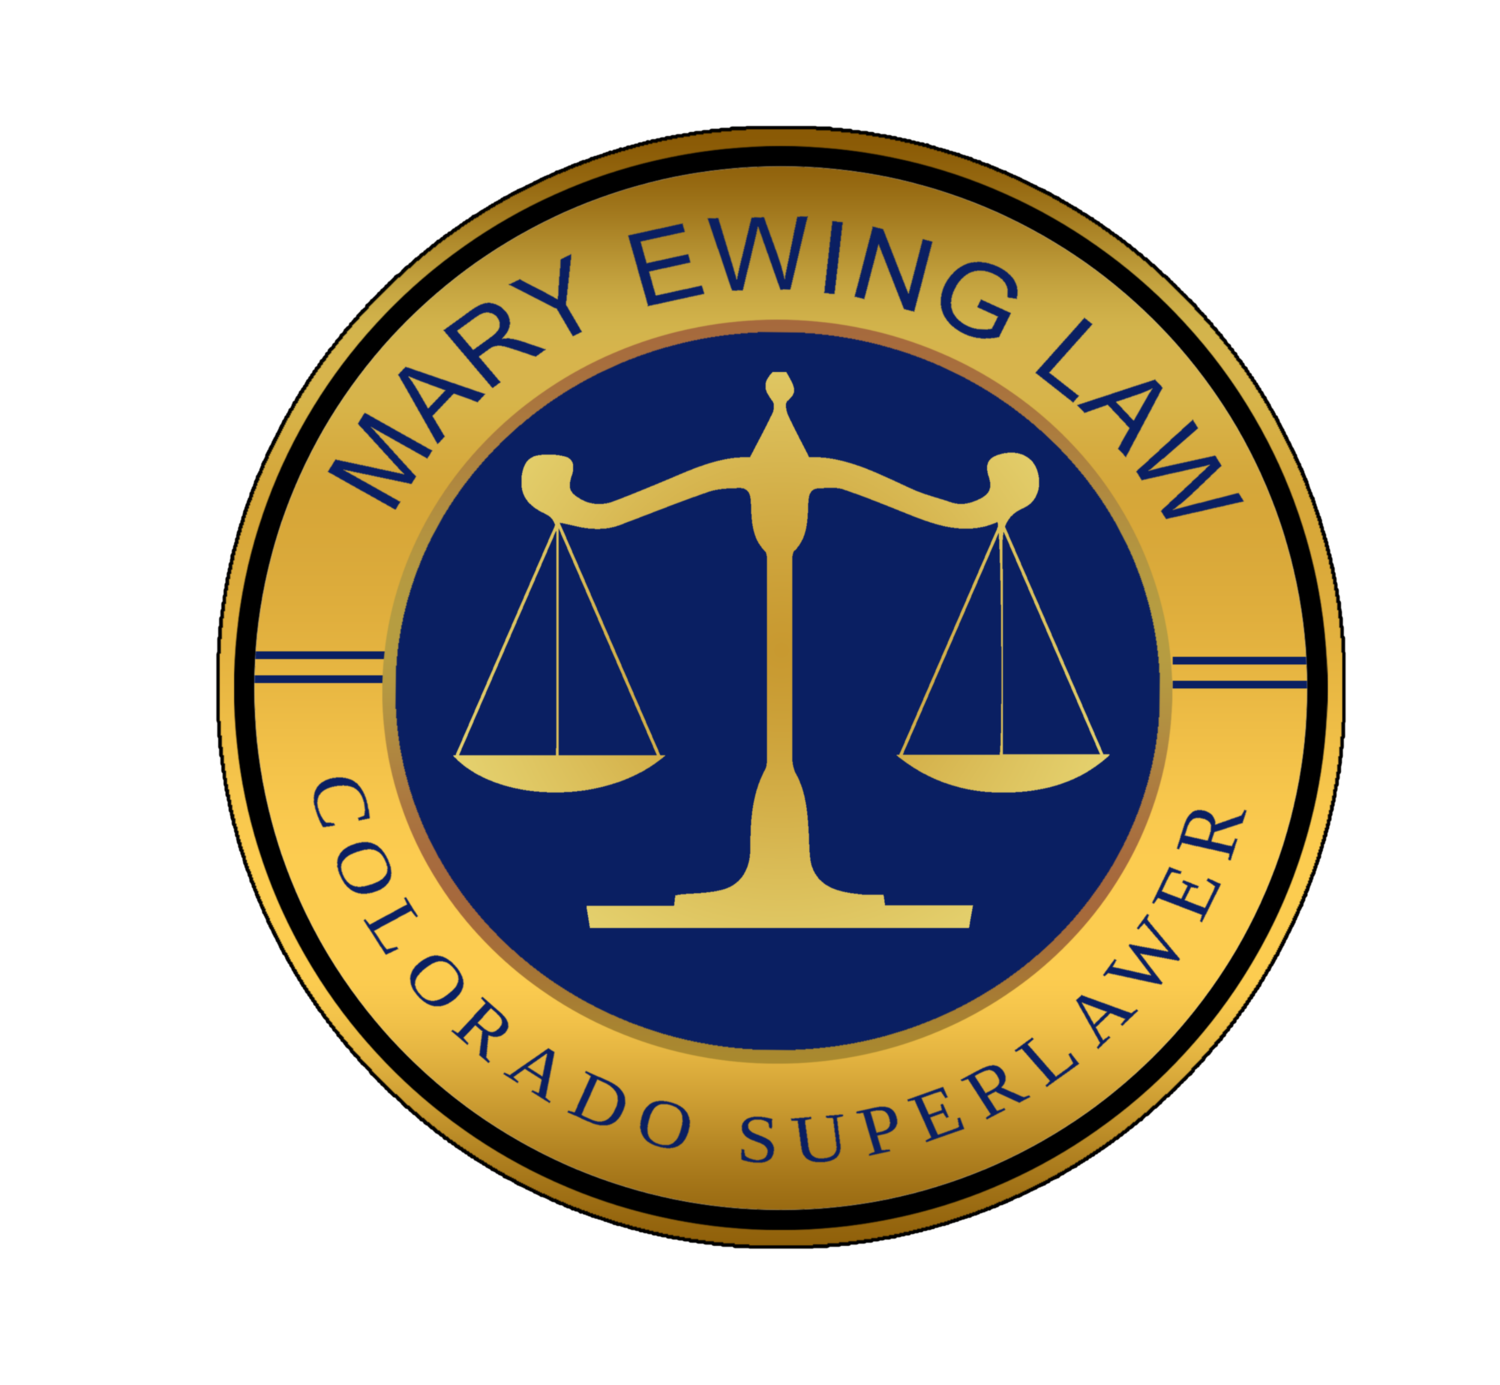 Mary Ewing Law